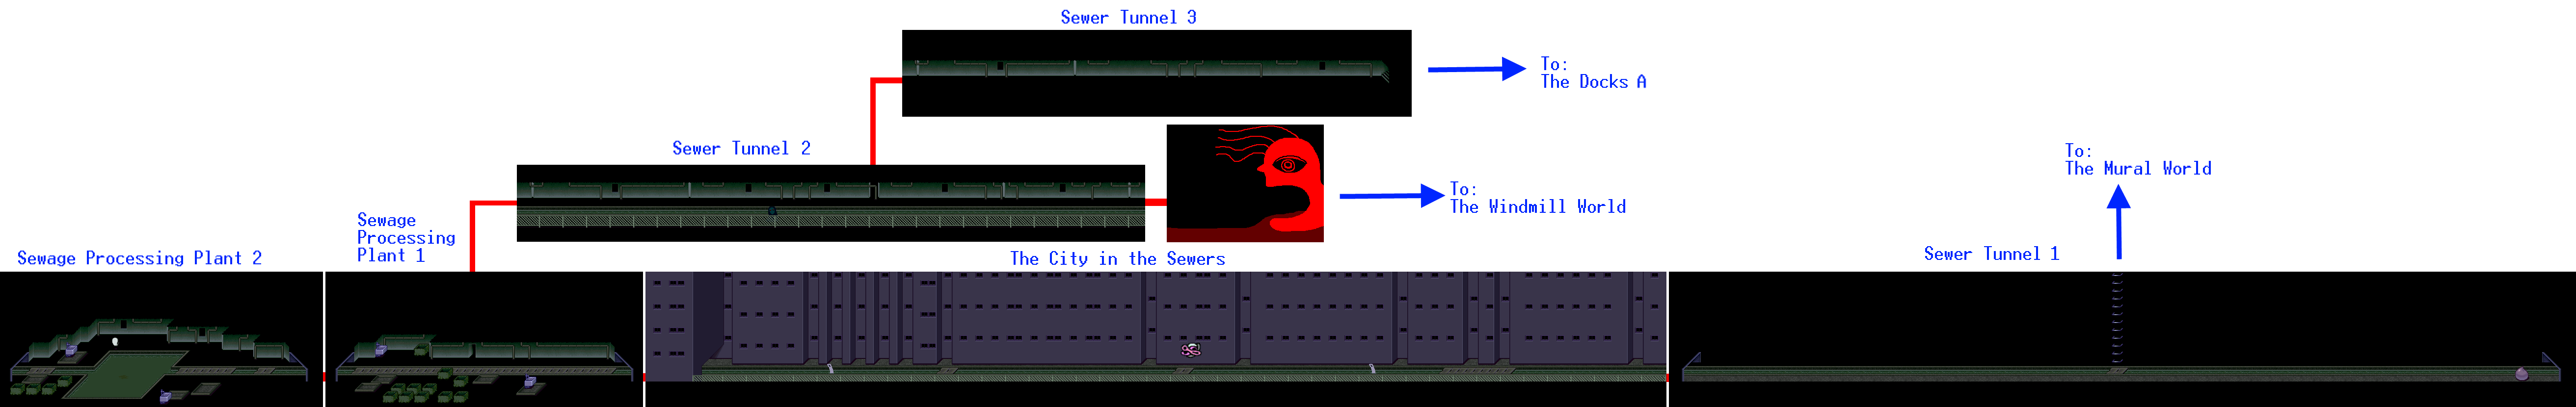 Sewer drawing tunnel. The sewers yume nikki